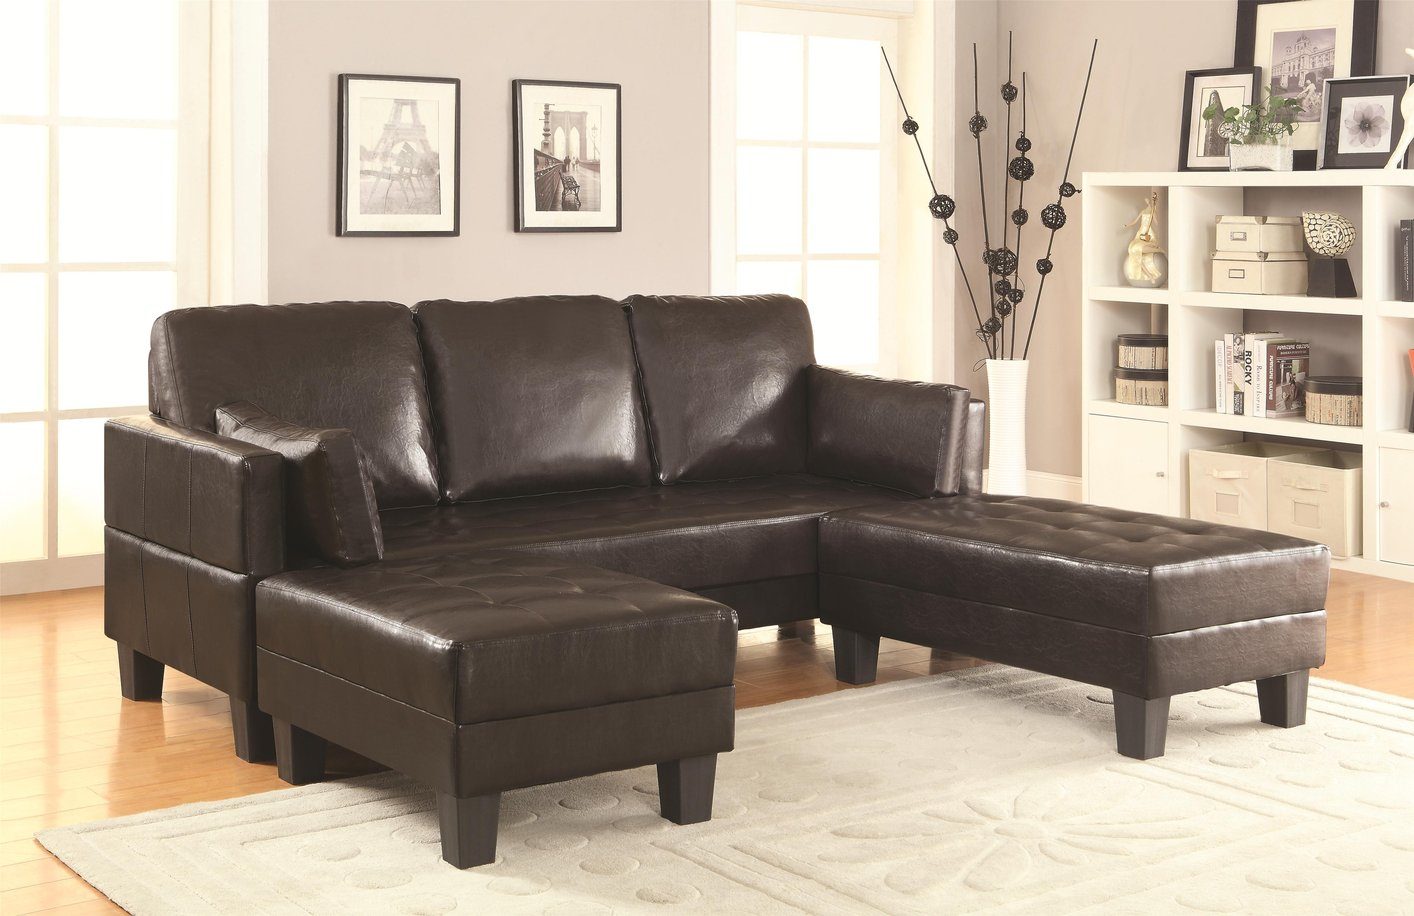 Bildresultat för leather bed sofa